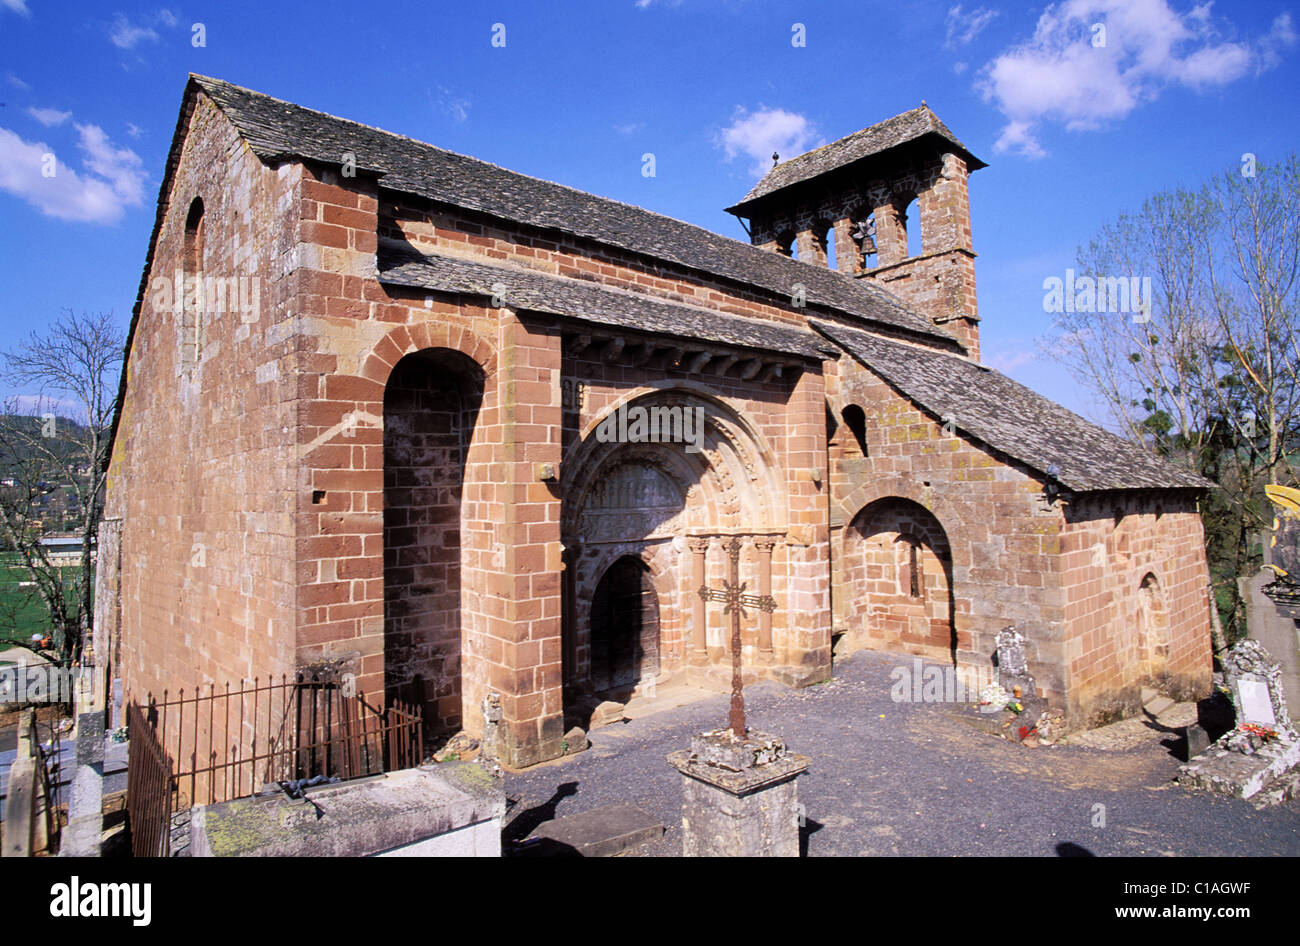 France, Aveyron, Lot valley, an 11th C persian roman church in Espalion - Stock Image